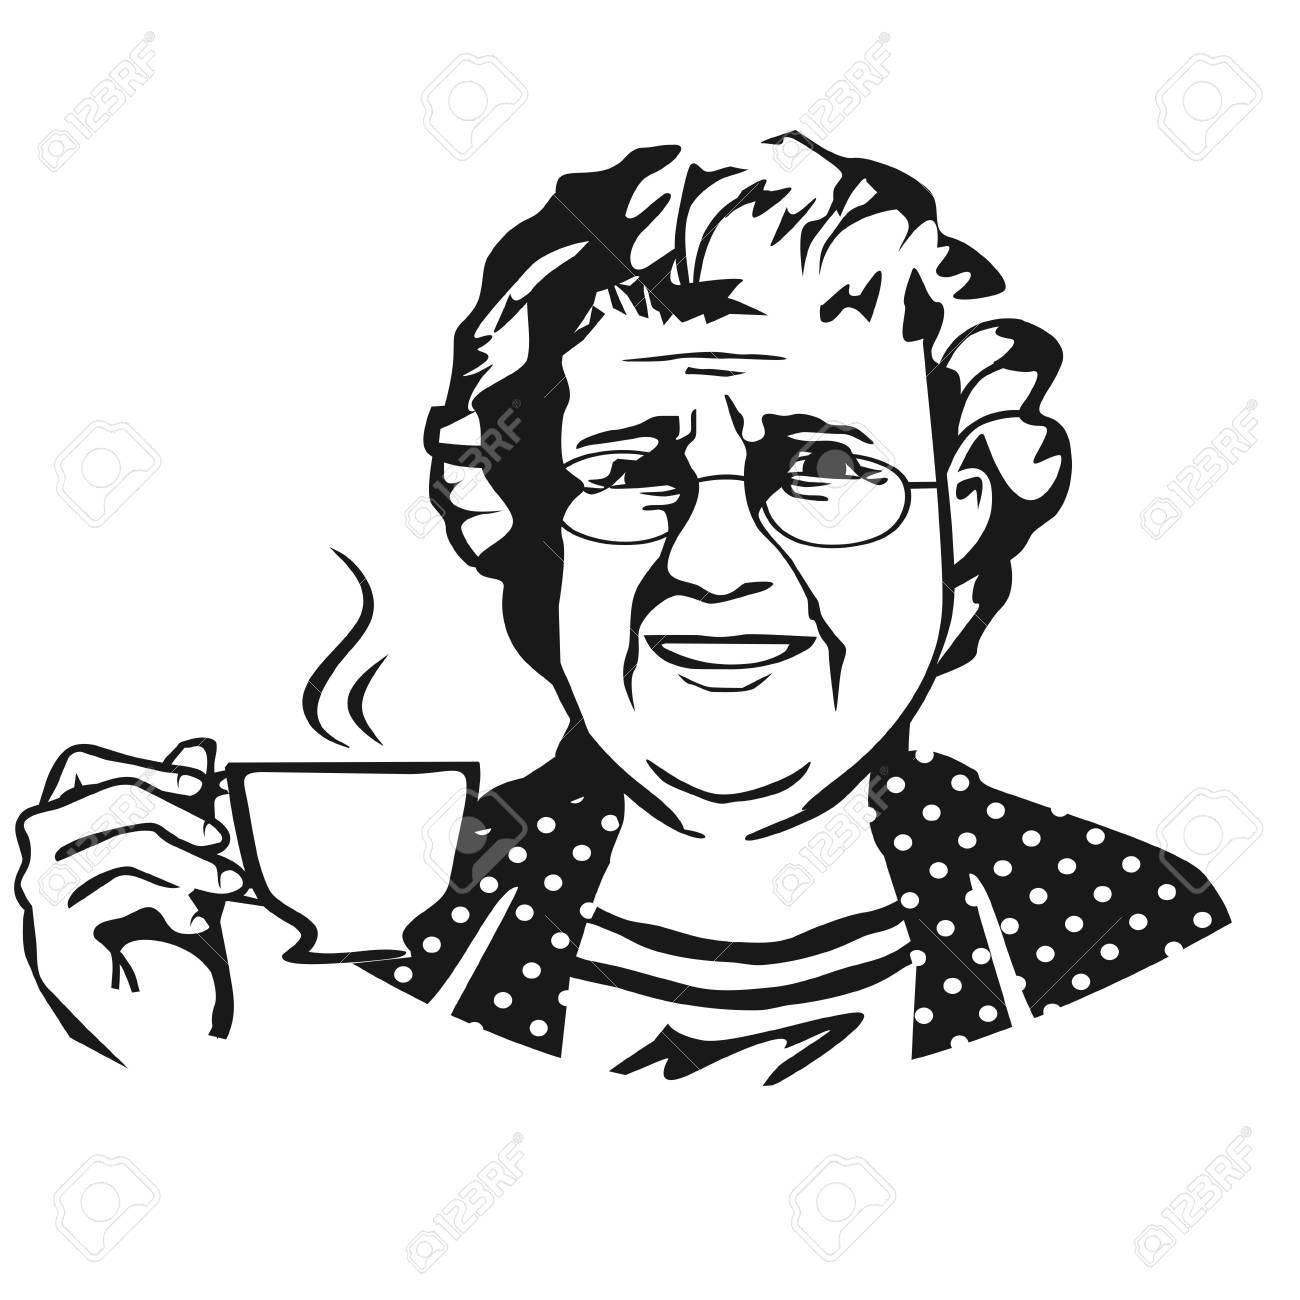 Old lady with hat black and white clipart image free Old lady clipart black and white 8 » Clipart Portal image free